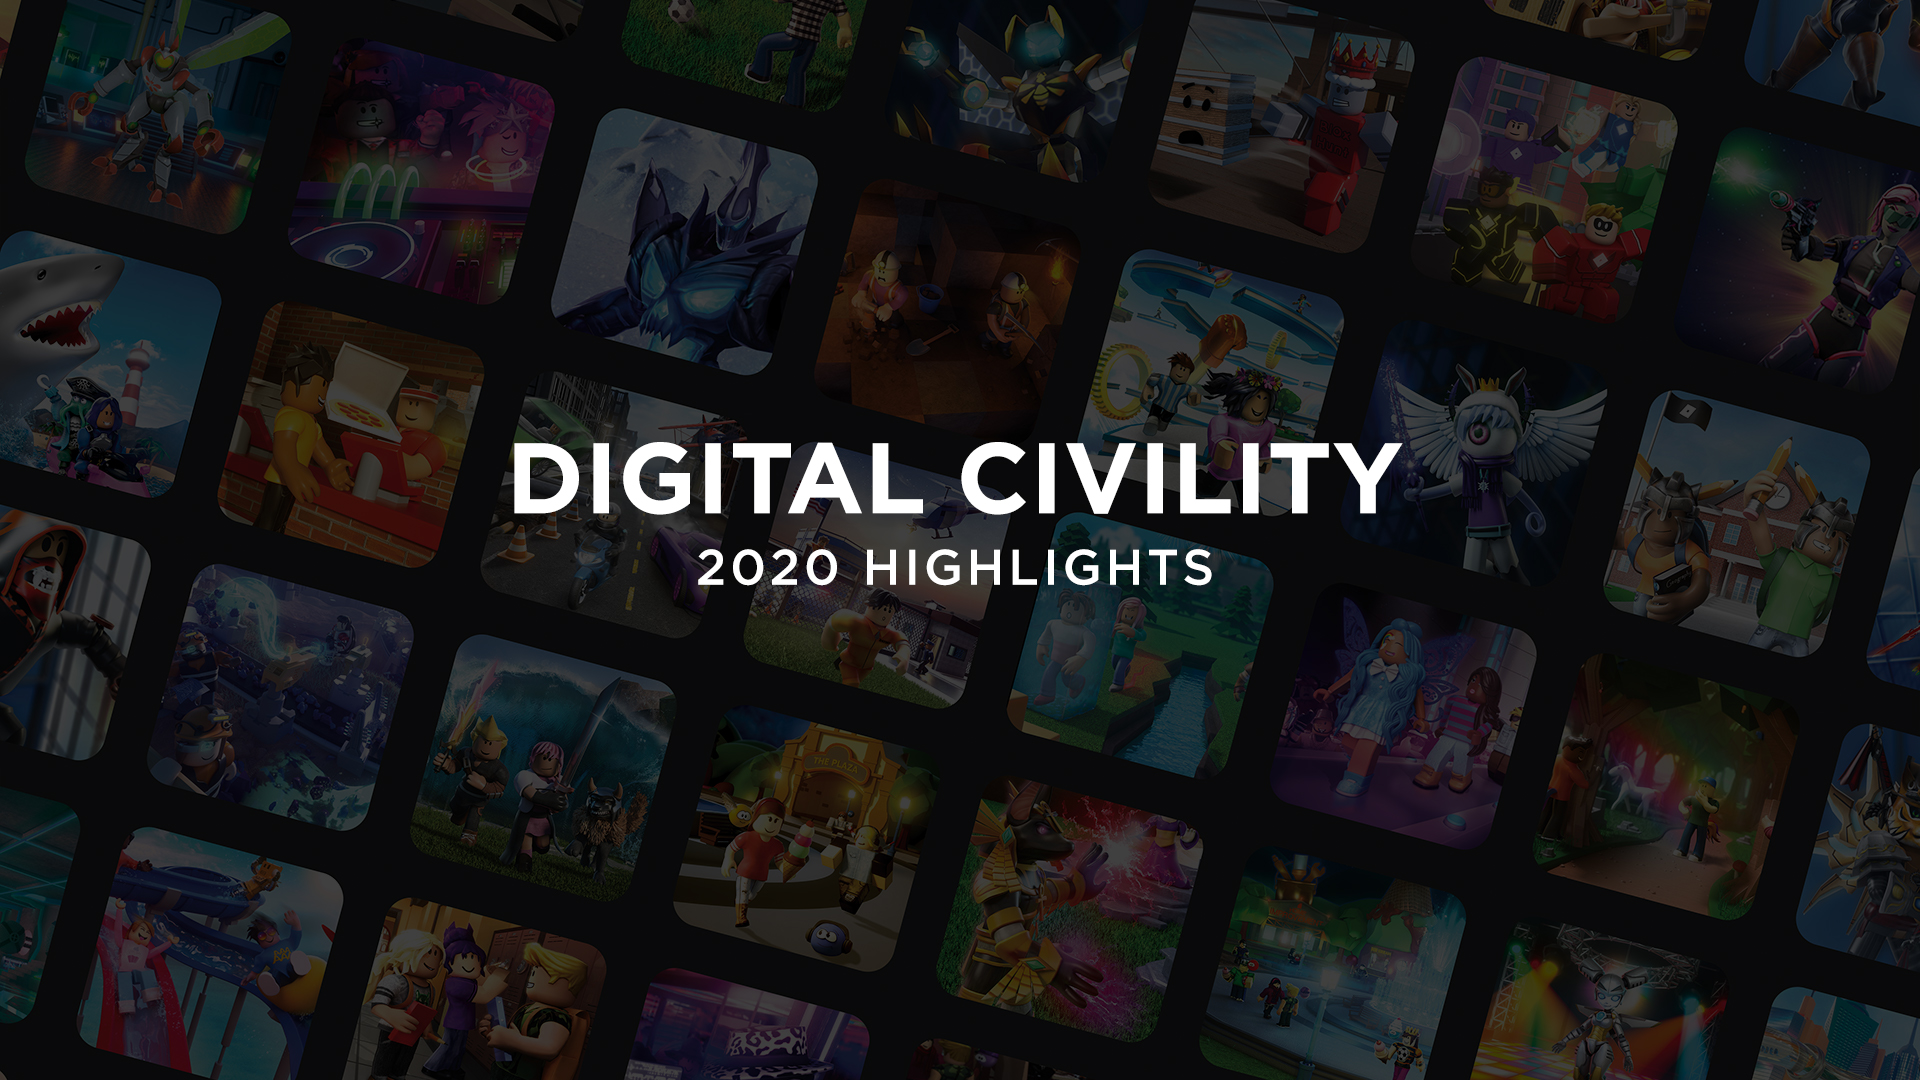 digital-civility-2020-highlights